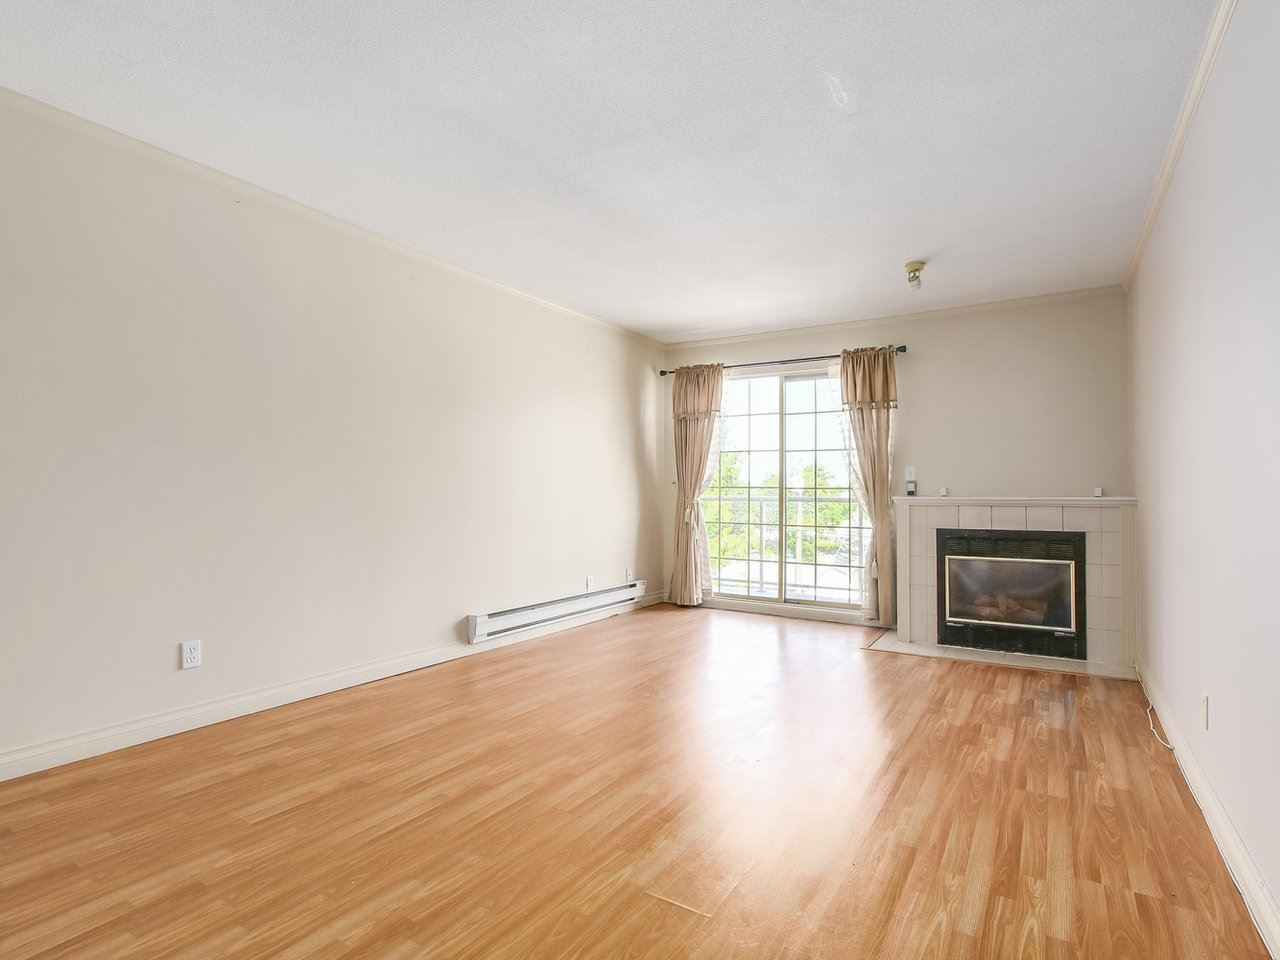 Condo Apartment at 311 13490 HILTON ROAD, Unit 311, North Surrey, British Columbia. Image 3